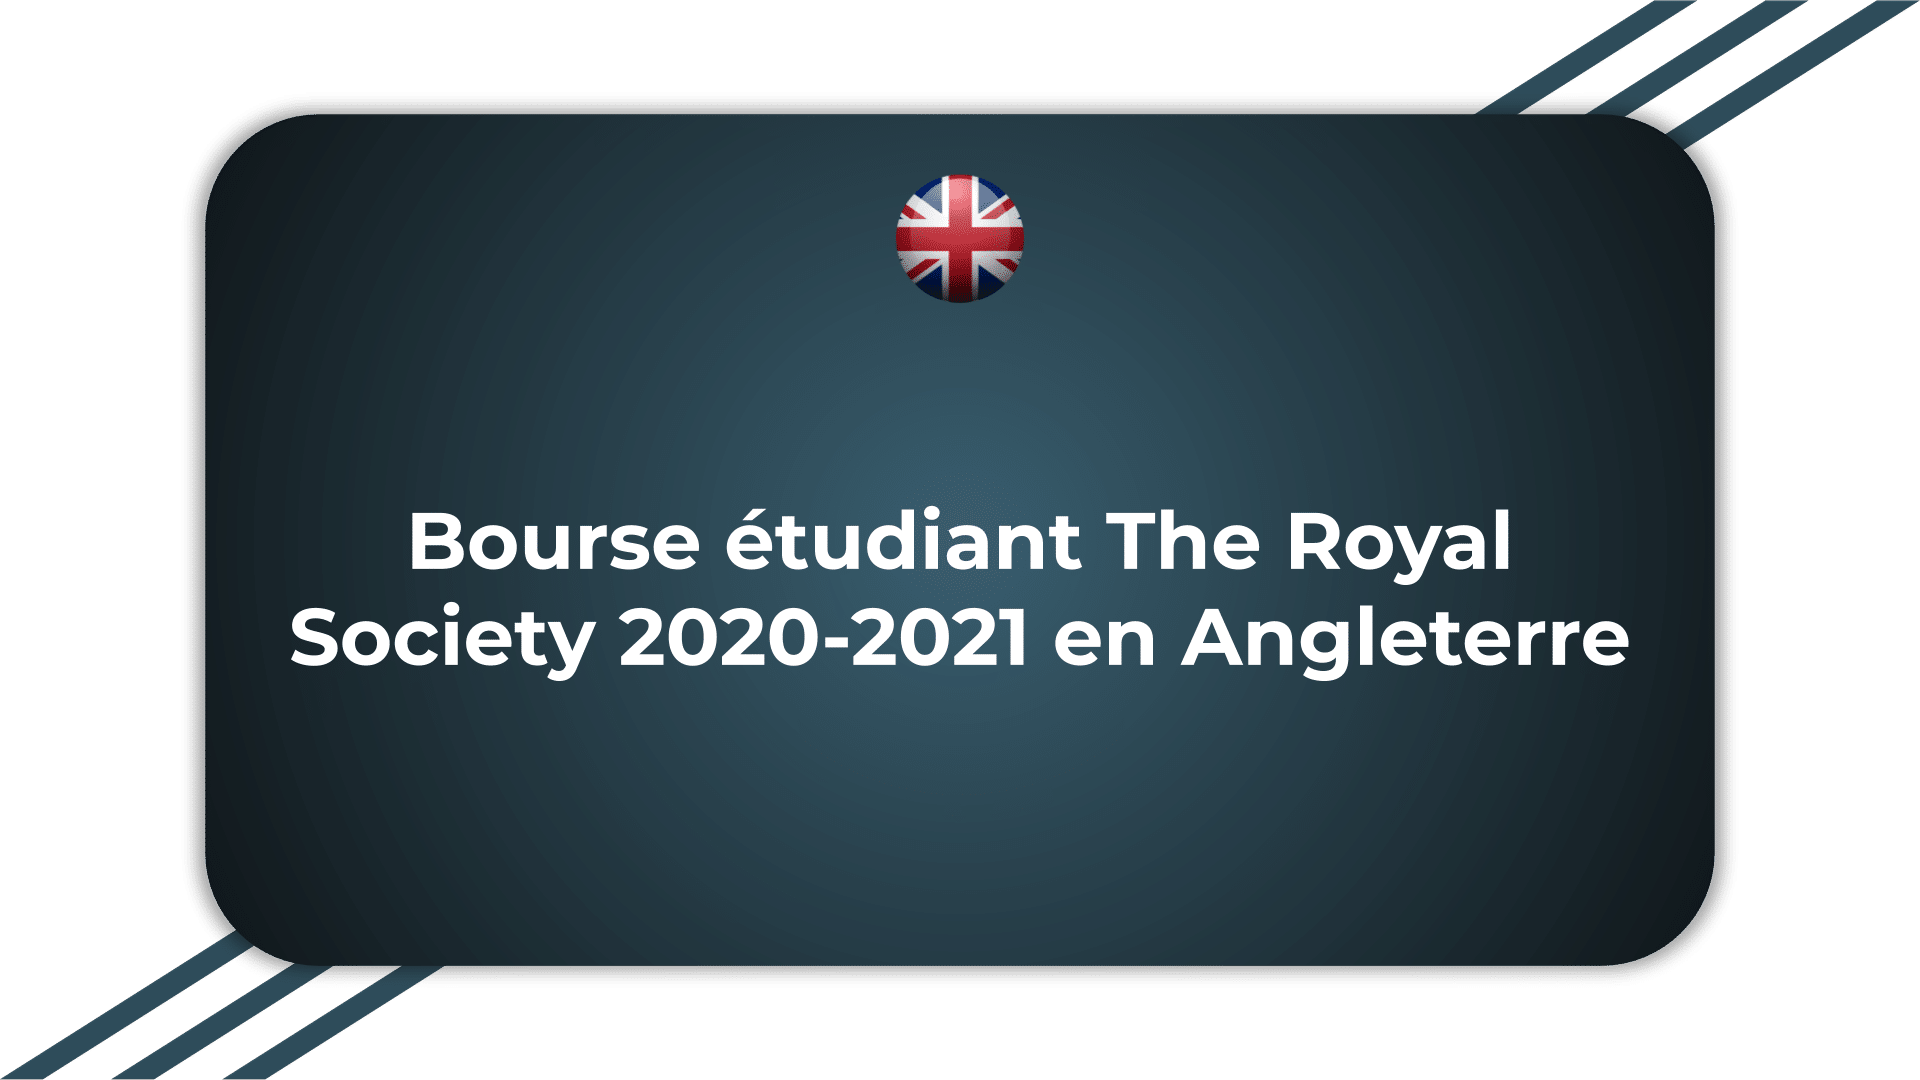 Bourse étudiant The Royal Society